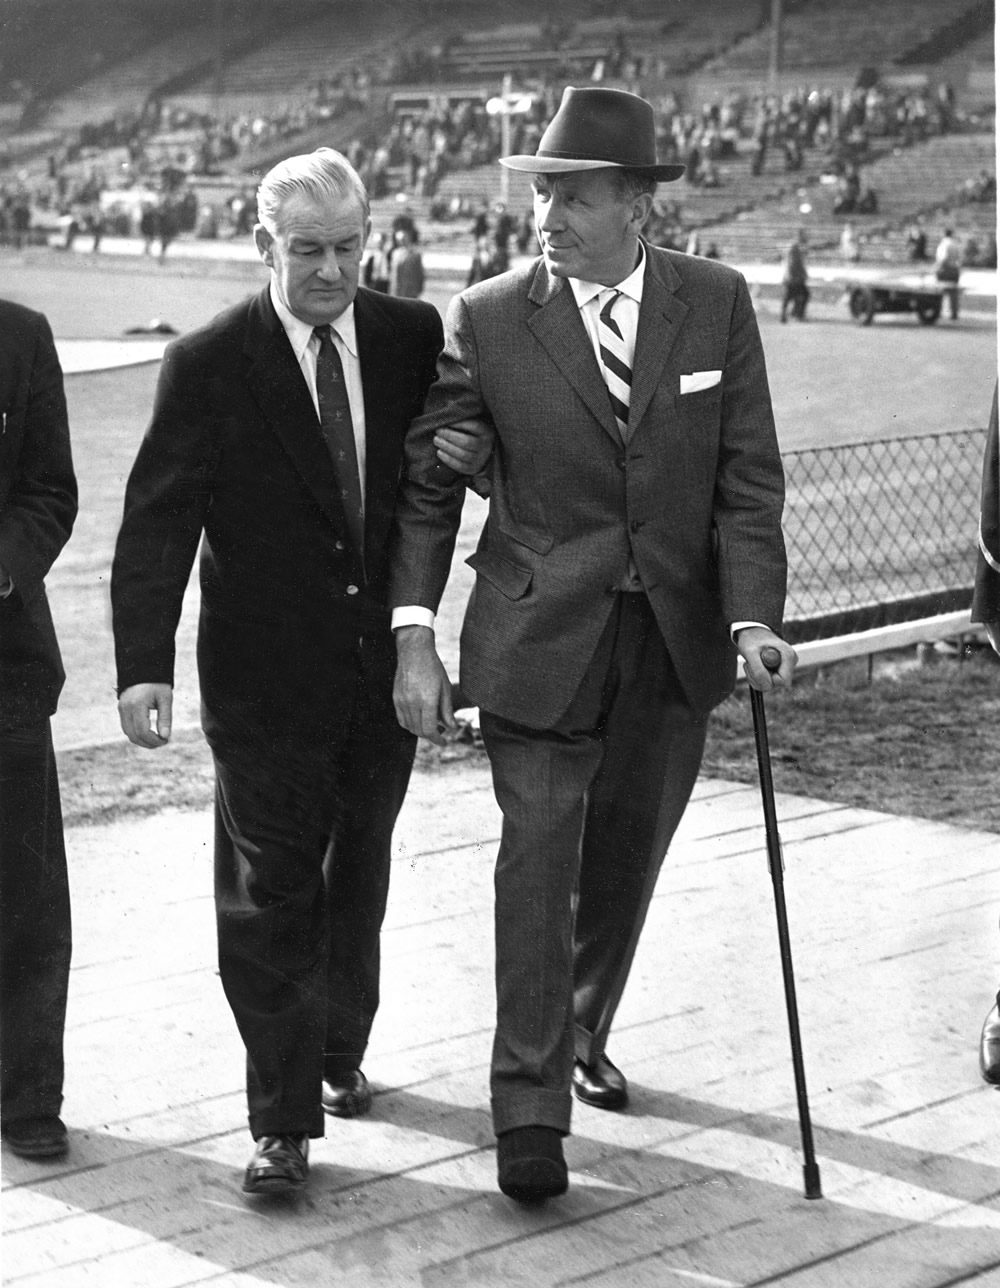 An injured Matt Busby returns to Wembley after the Munich air disaster, May 1958